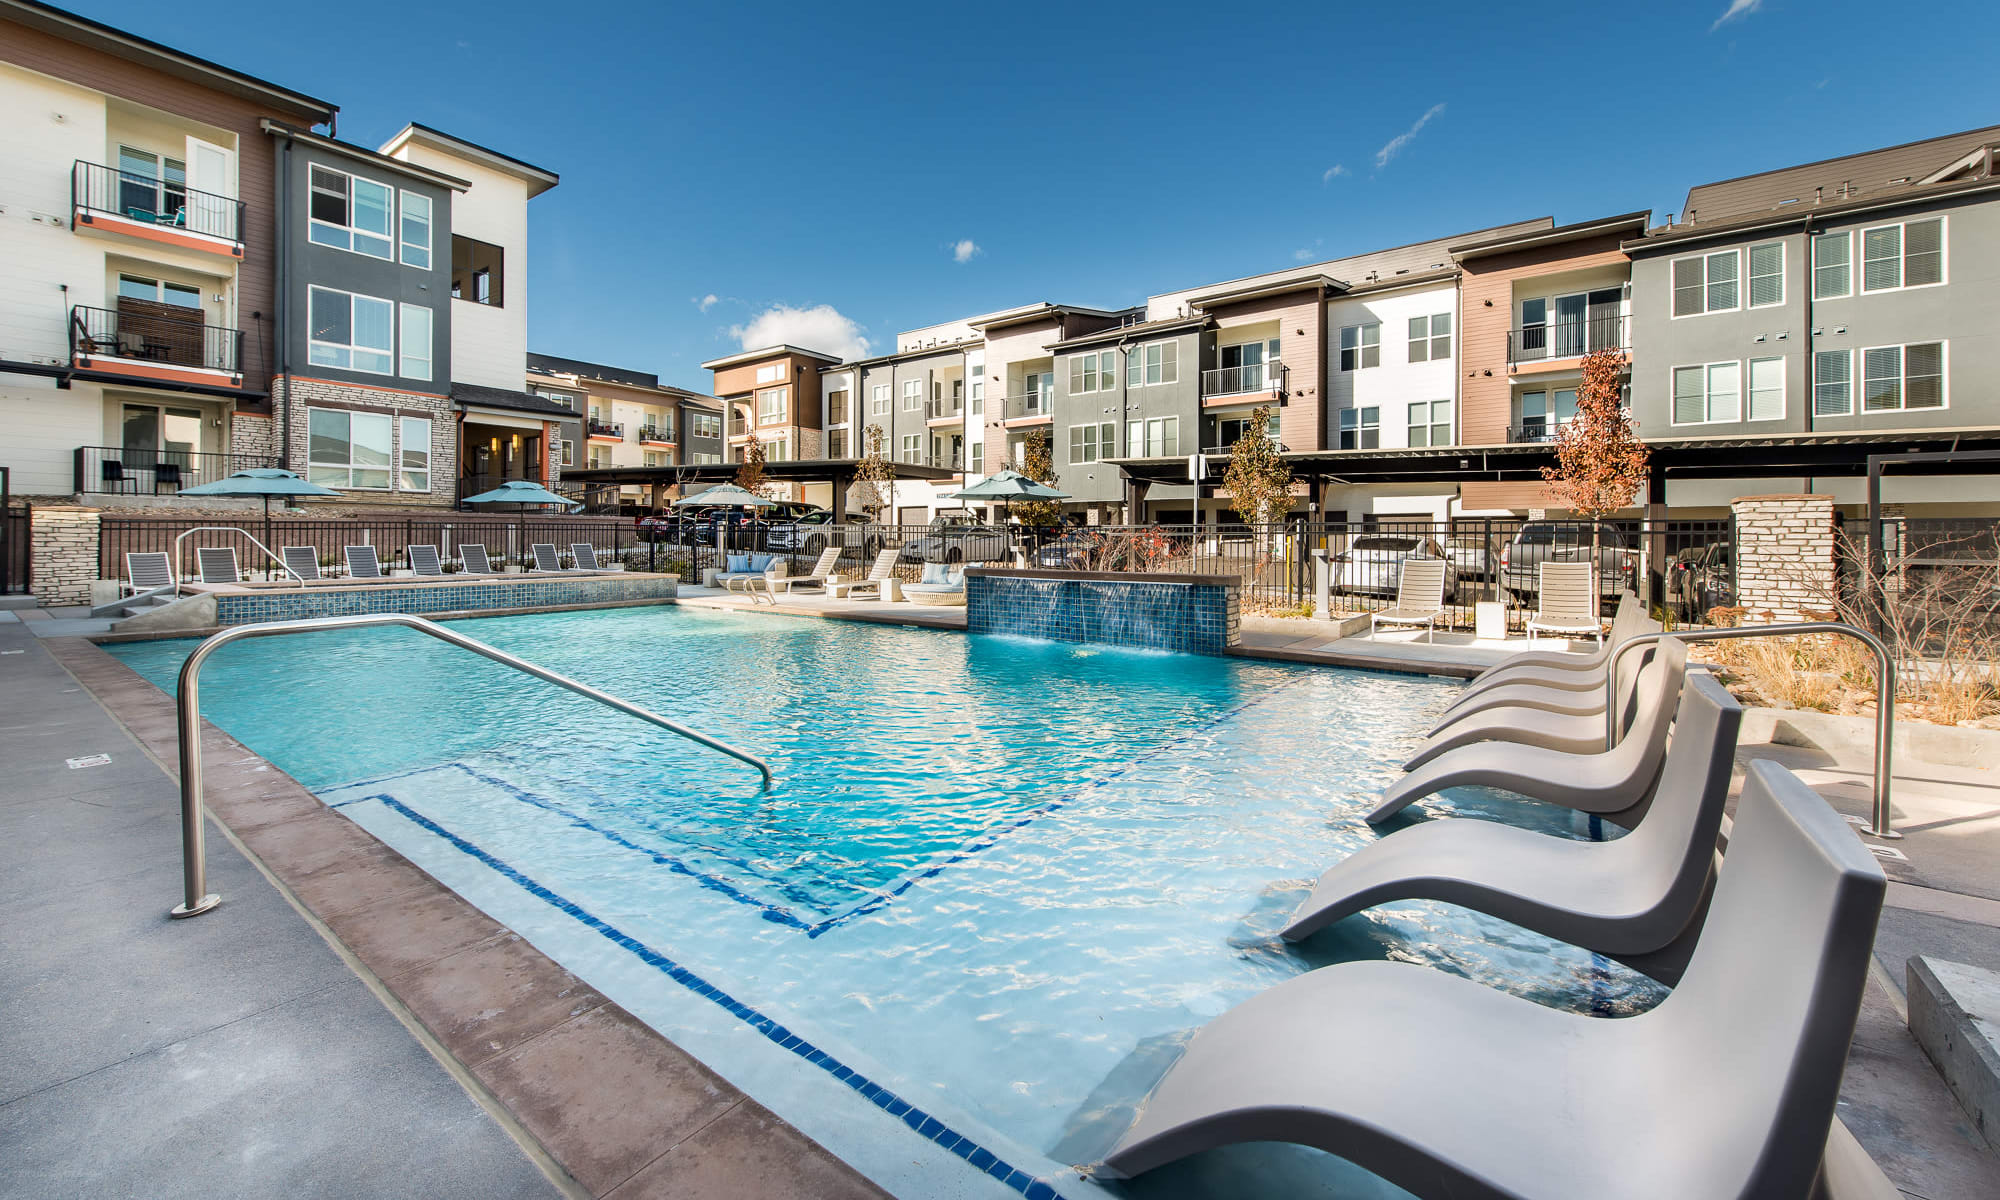 Apartments in Englewood, Colorado